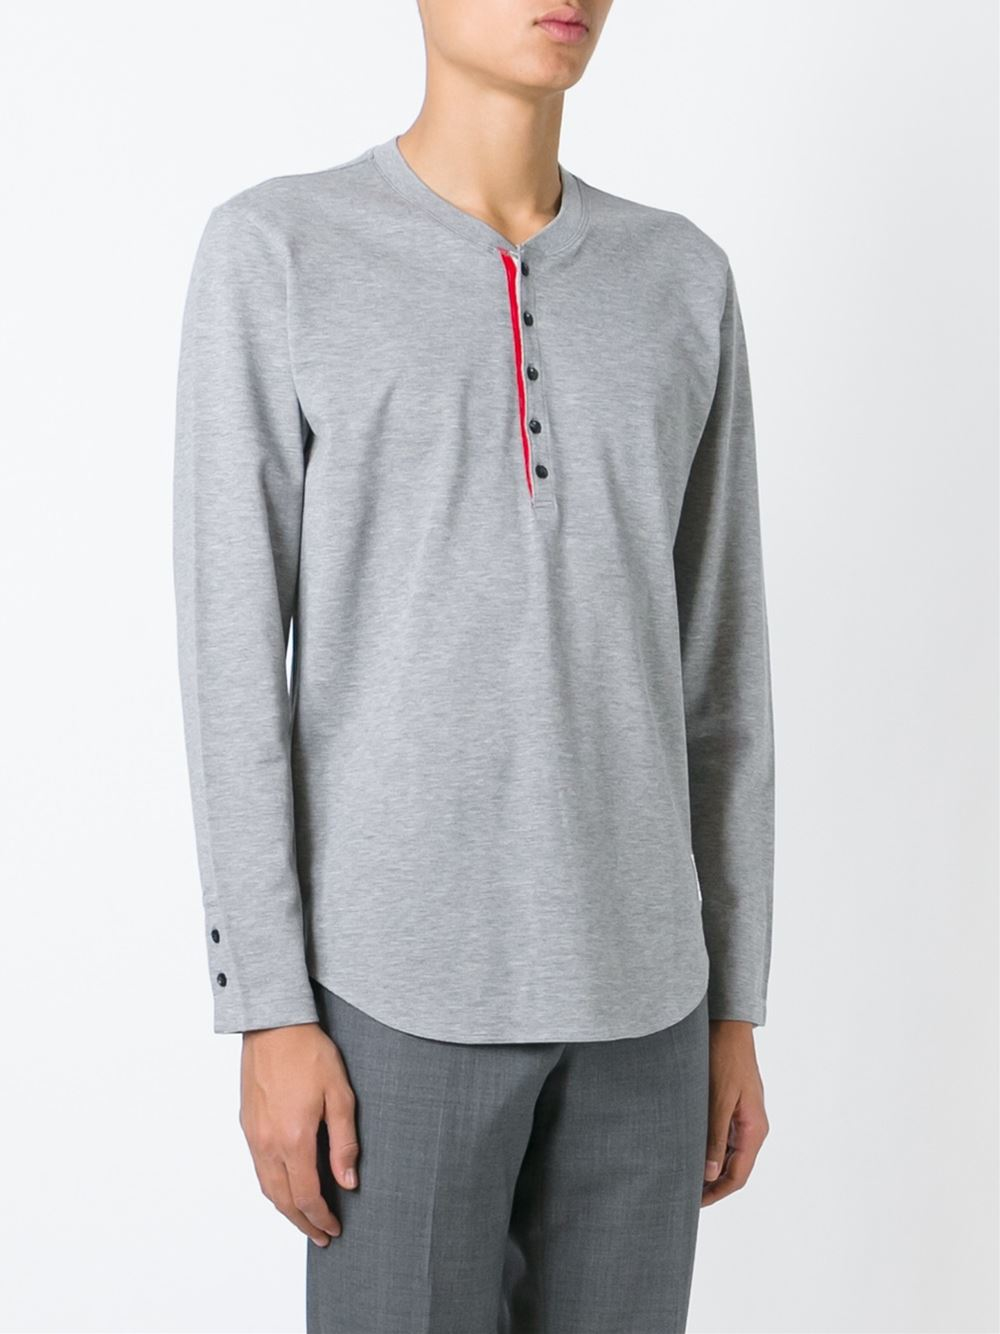 Lyst thom browne piqu henley long sleeve t shirt in for Thom browne t shirt